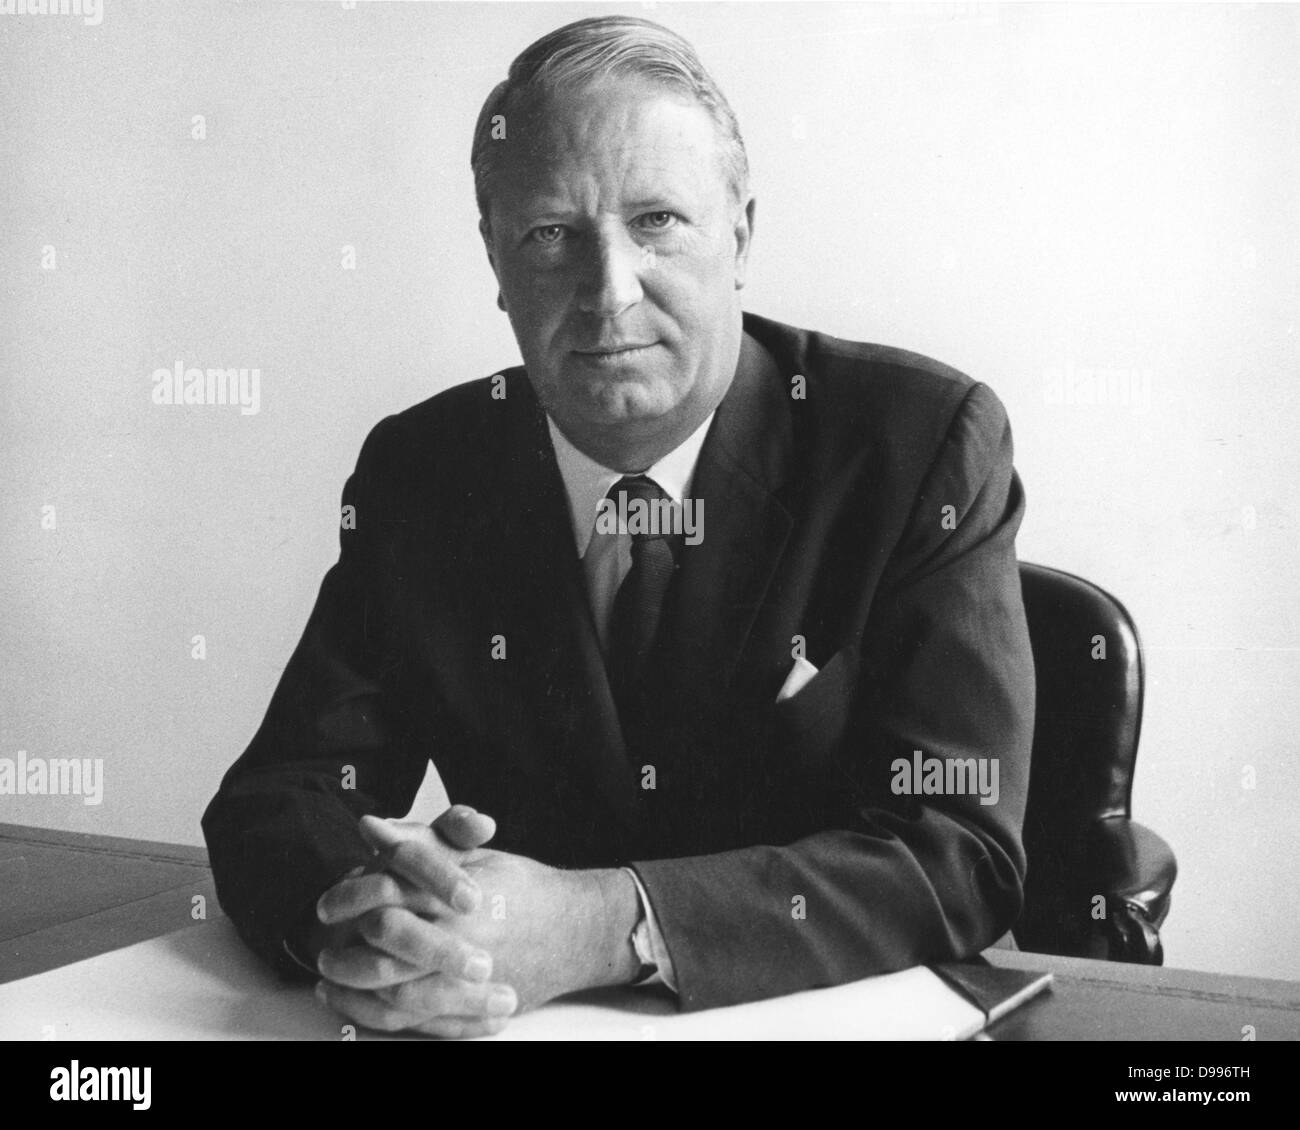 Sir Edward Richard George 'Ted' Heath, KG, MBE (9 July 1916 – 17 July 2005) , British Conservative Party - Stock Image